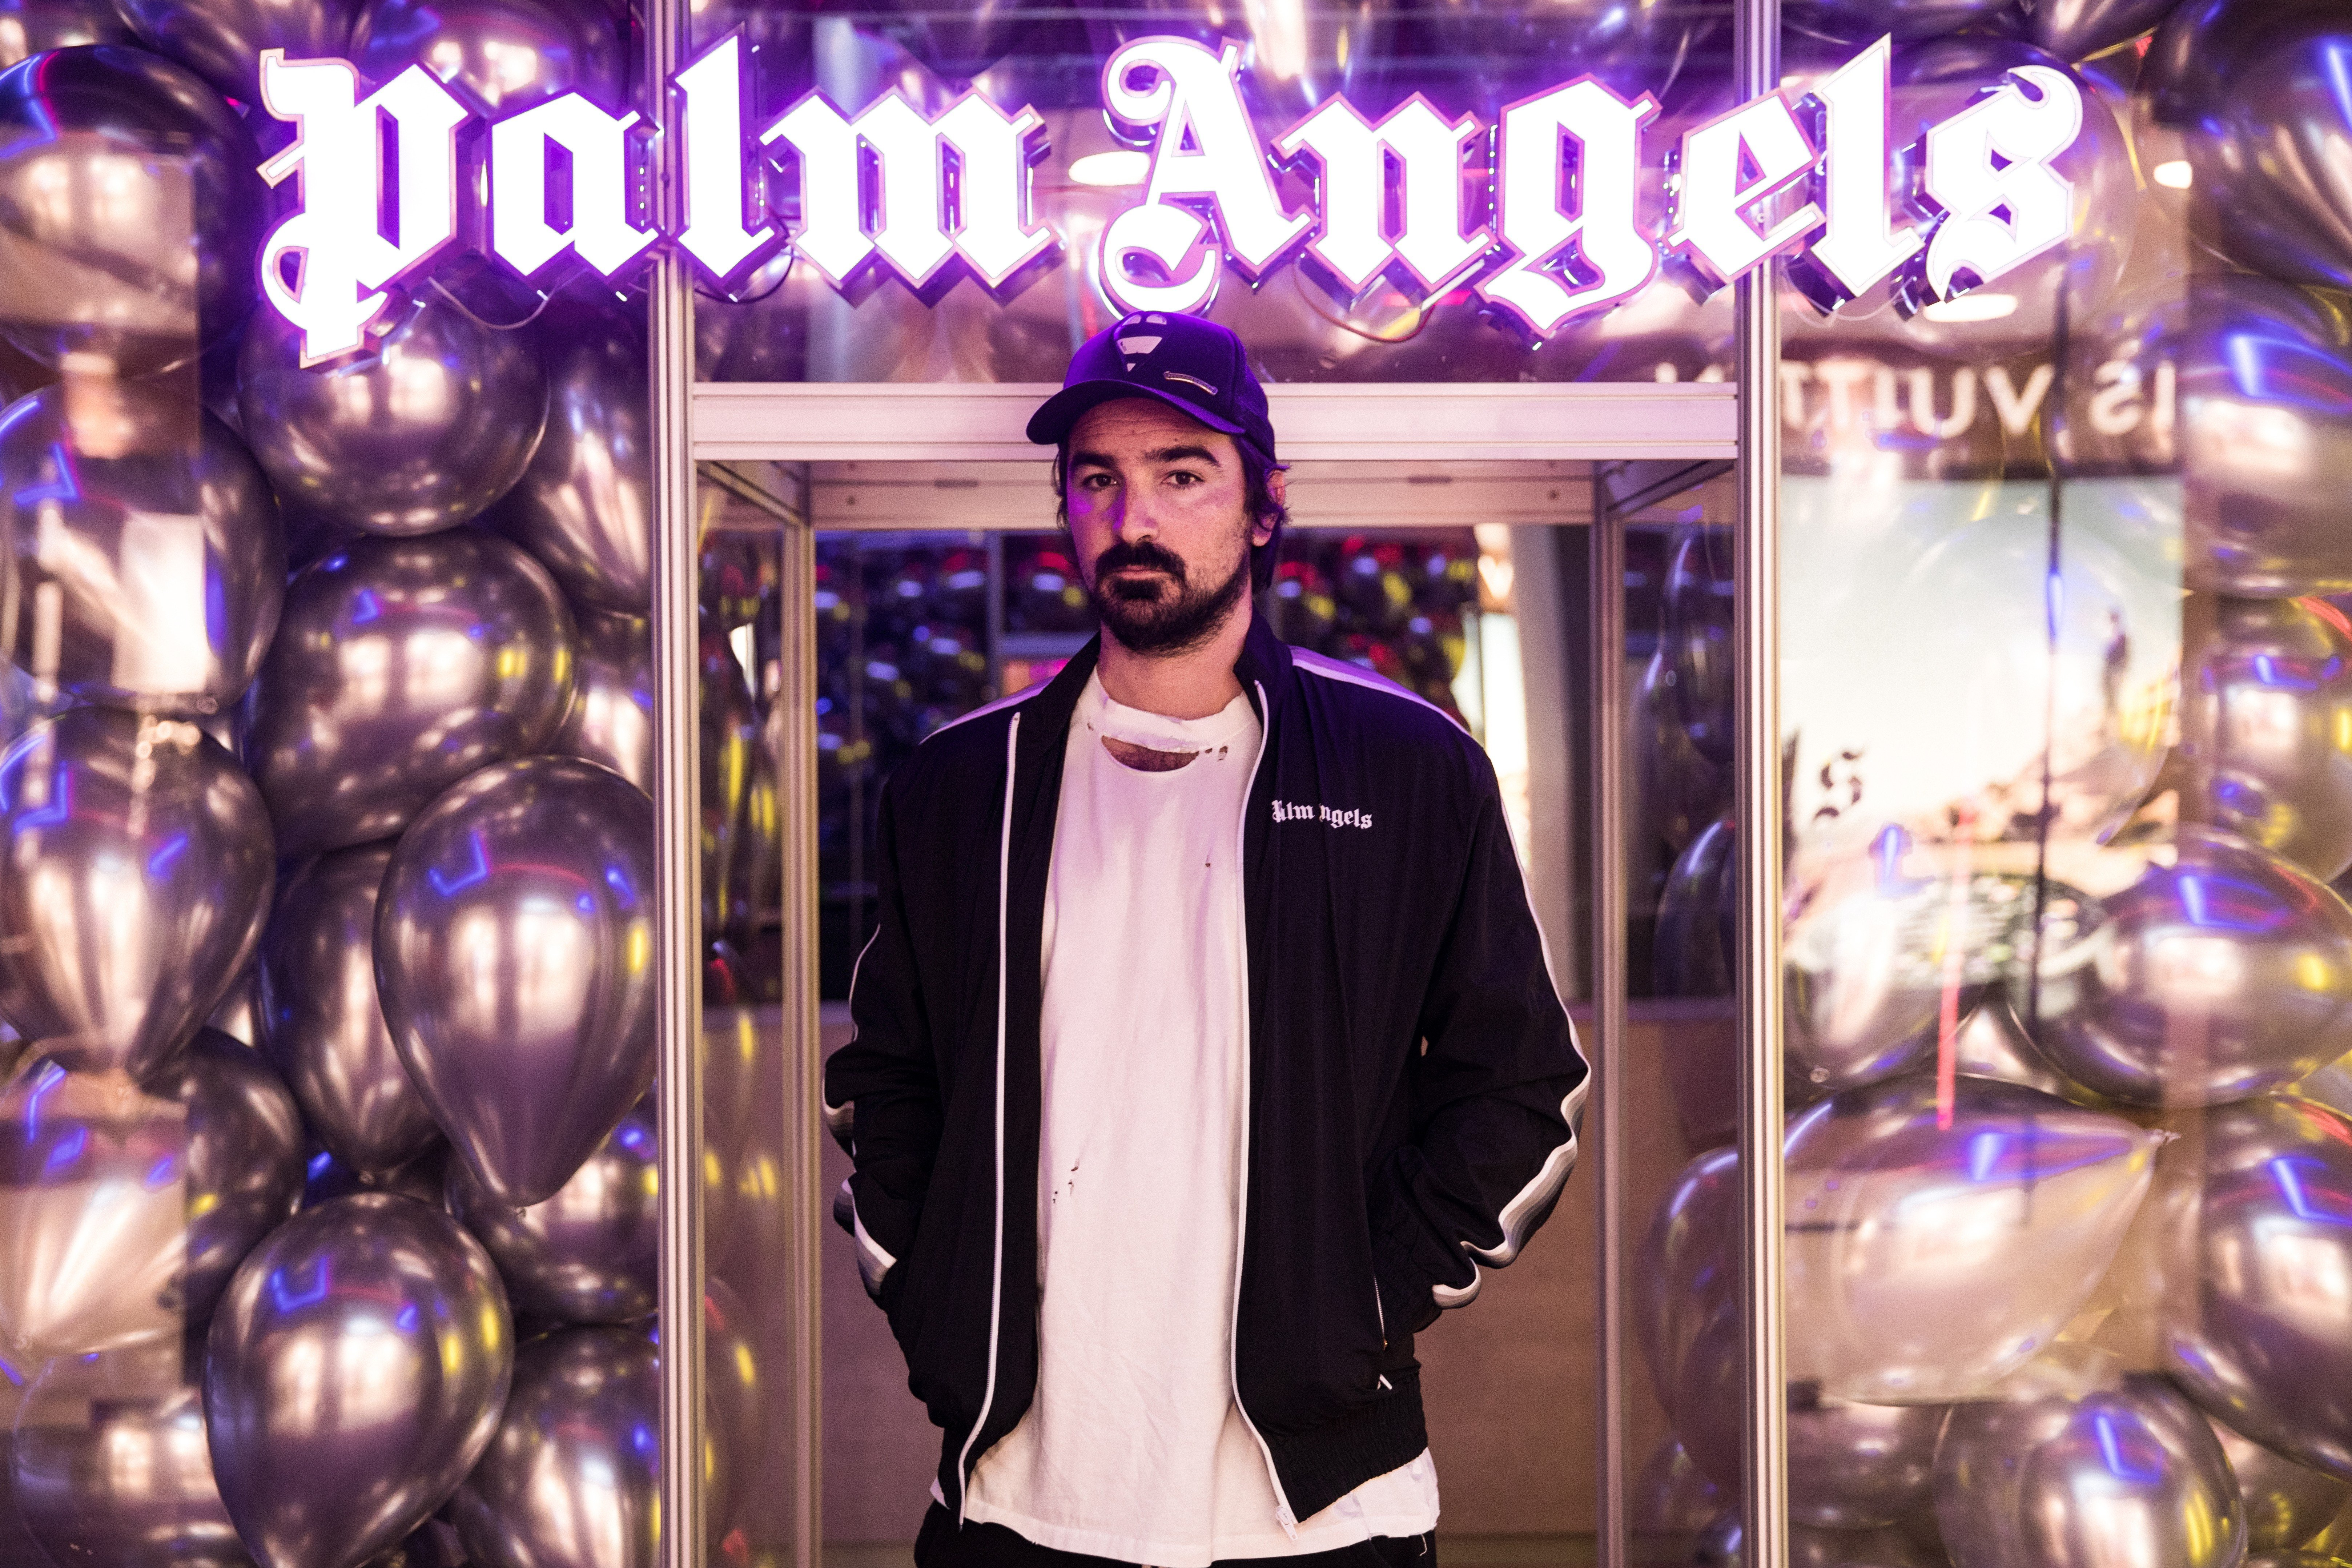 Palm Angels brings Los Angeles skate culture (with a